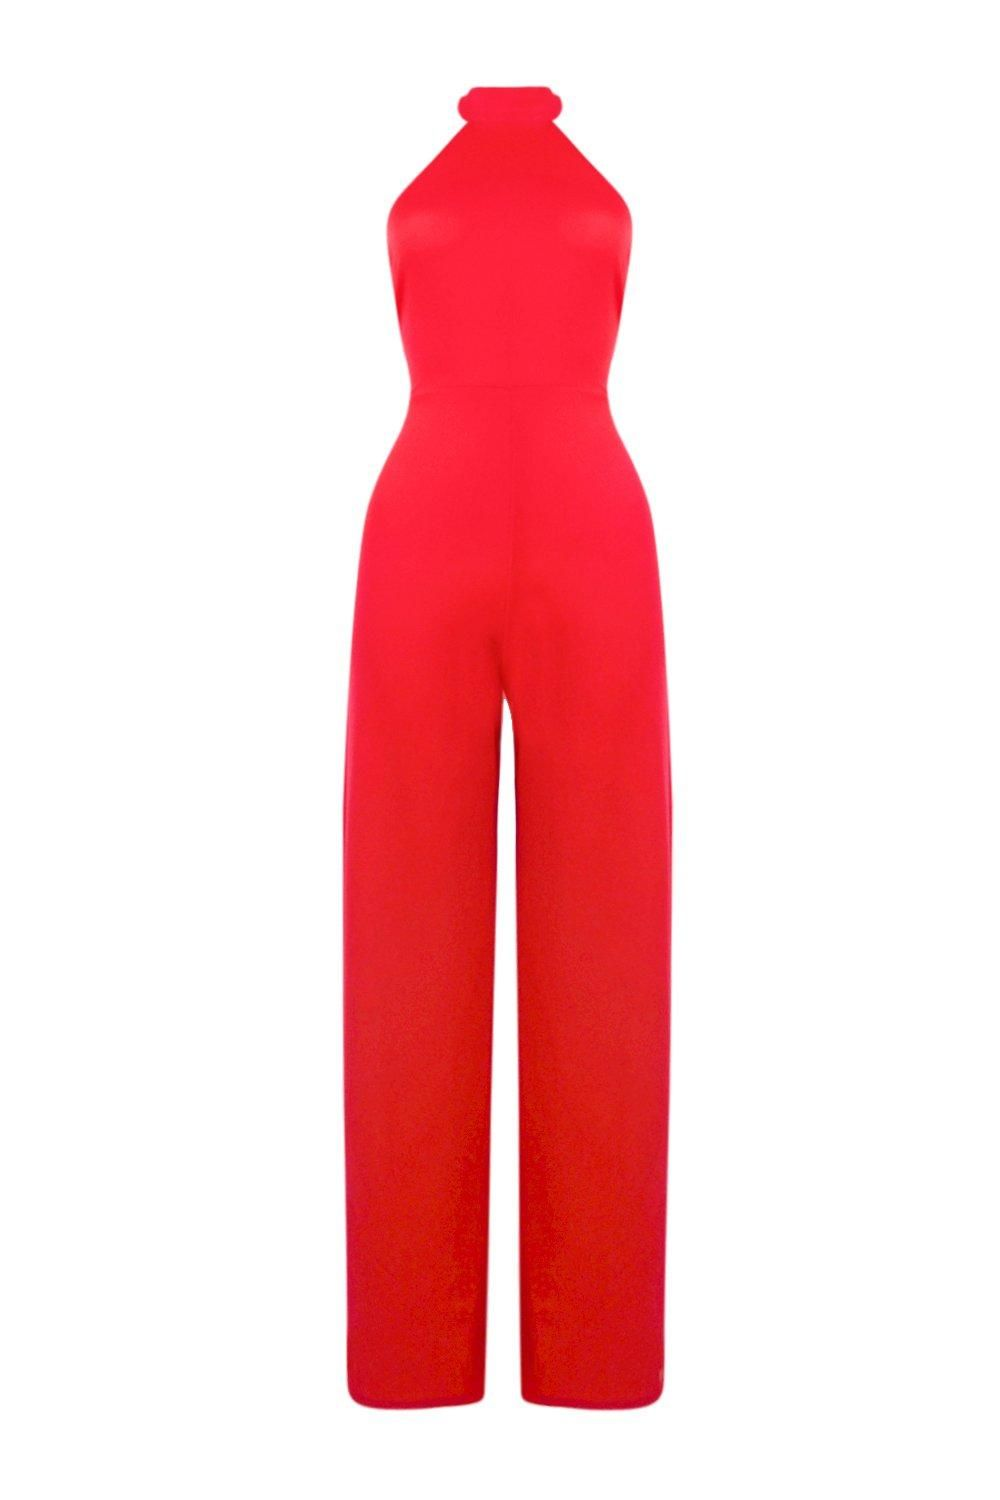 f72fd8770152 Jumpsuits are your day-to-night dress alternative Your 70s style  inspiration starts with